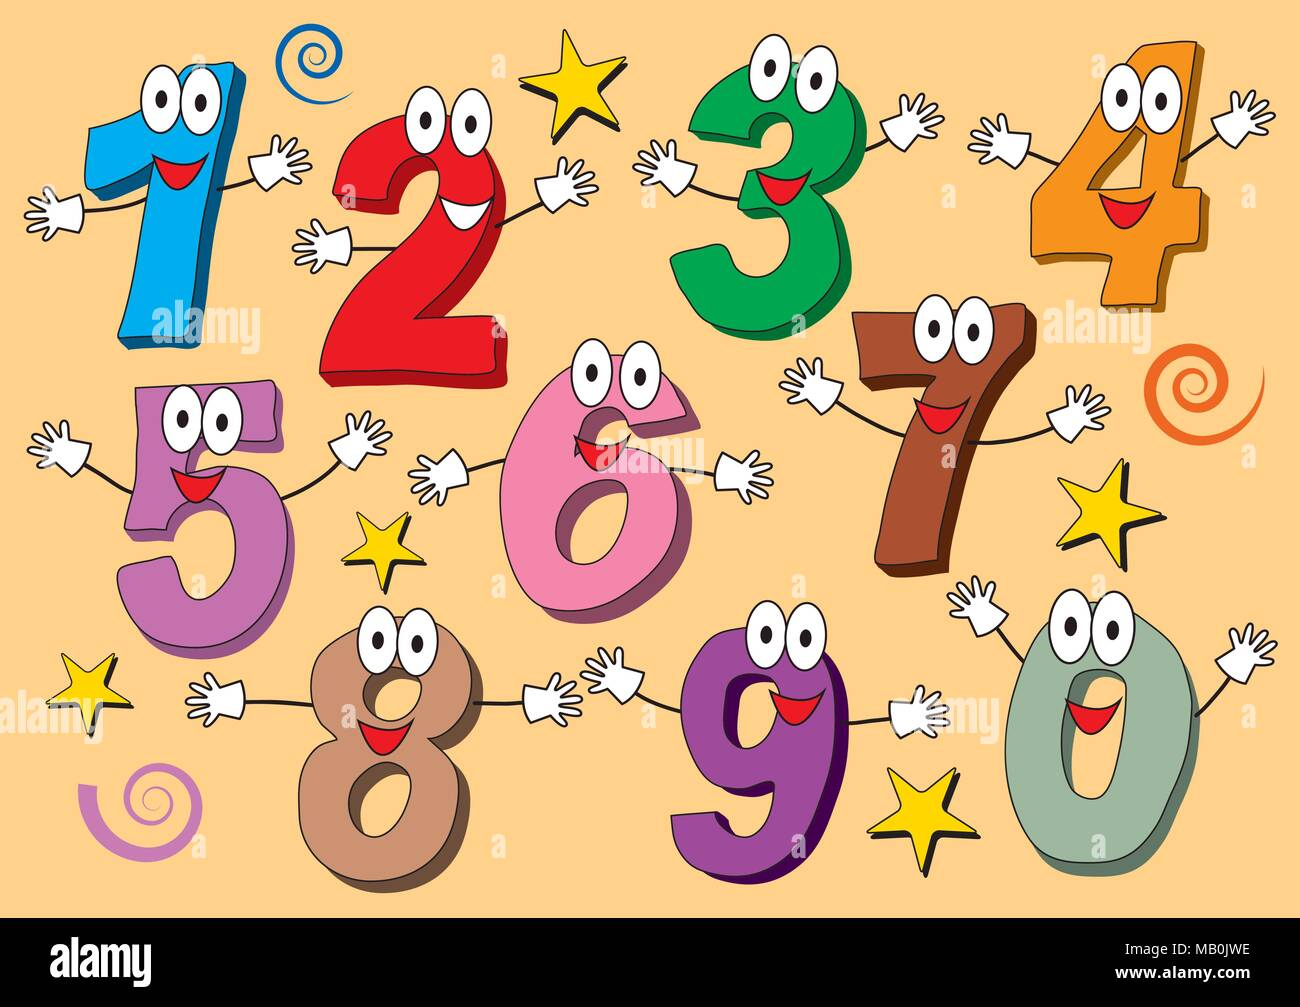 Cartoon numbers 0 to 9 icons made as human figures with big eyes and hands. Hand drawn isolated set illustrations for children - Stock Image